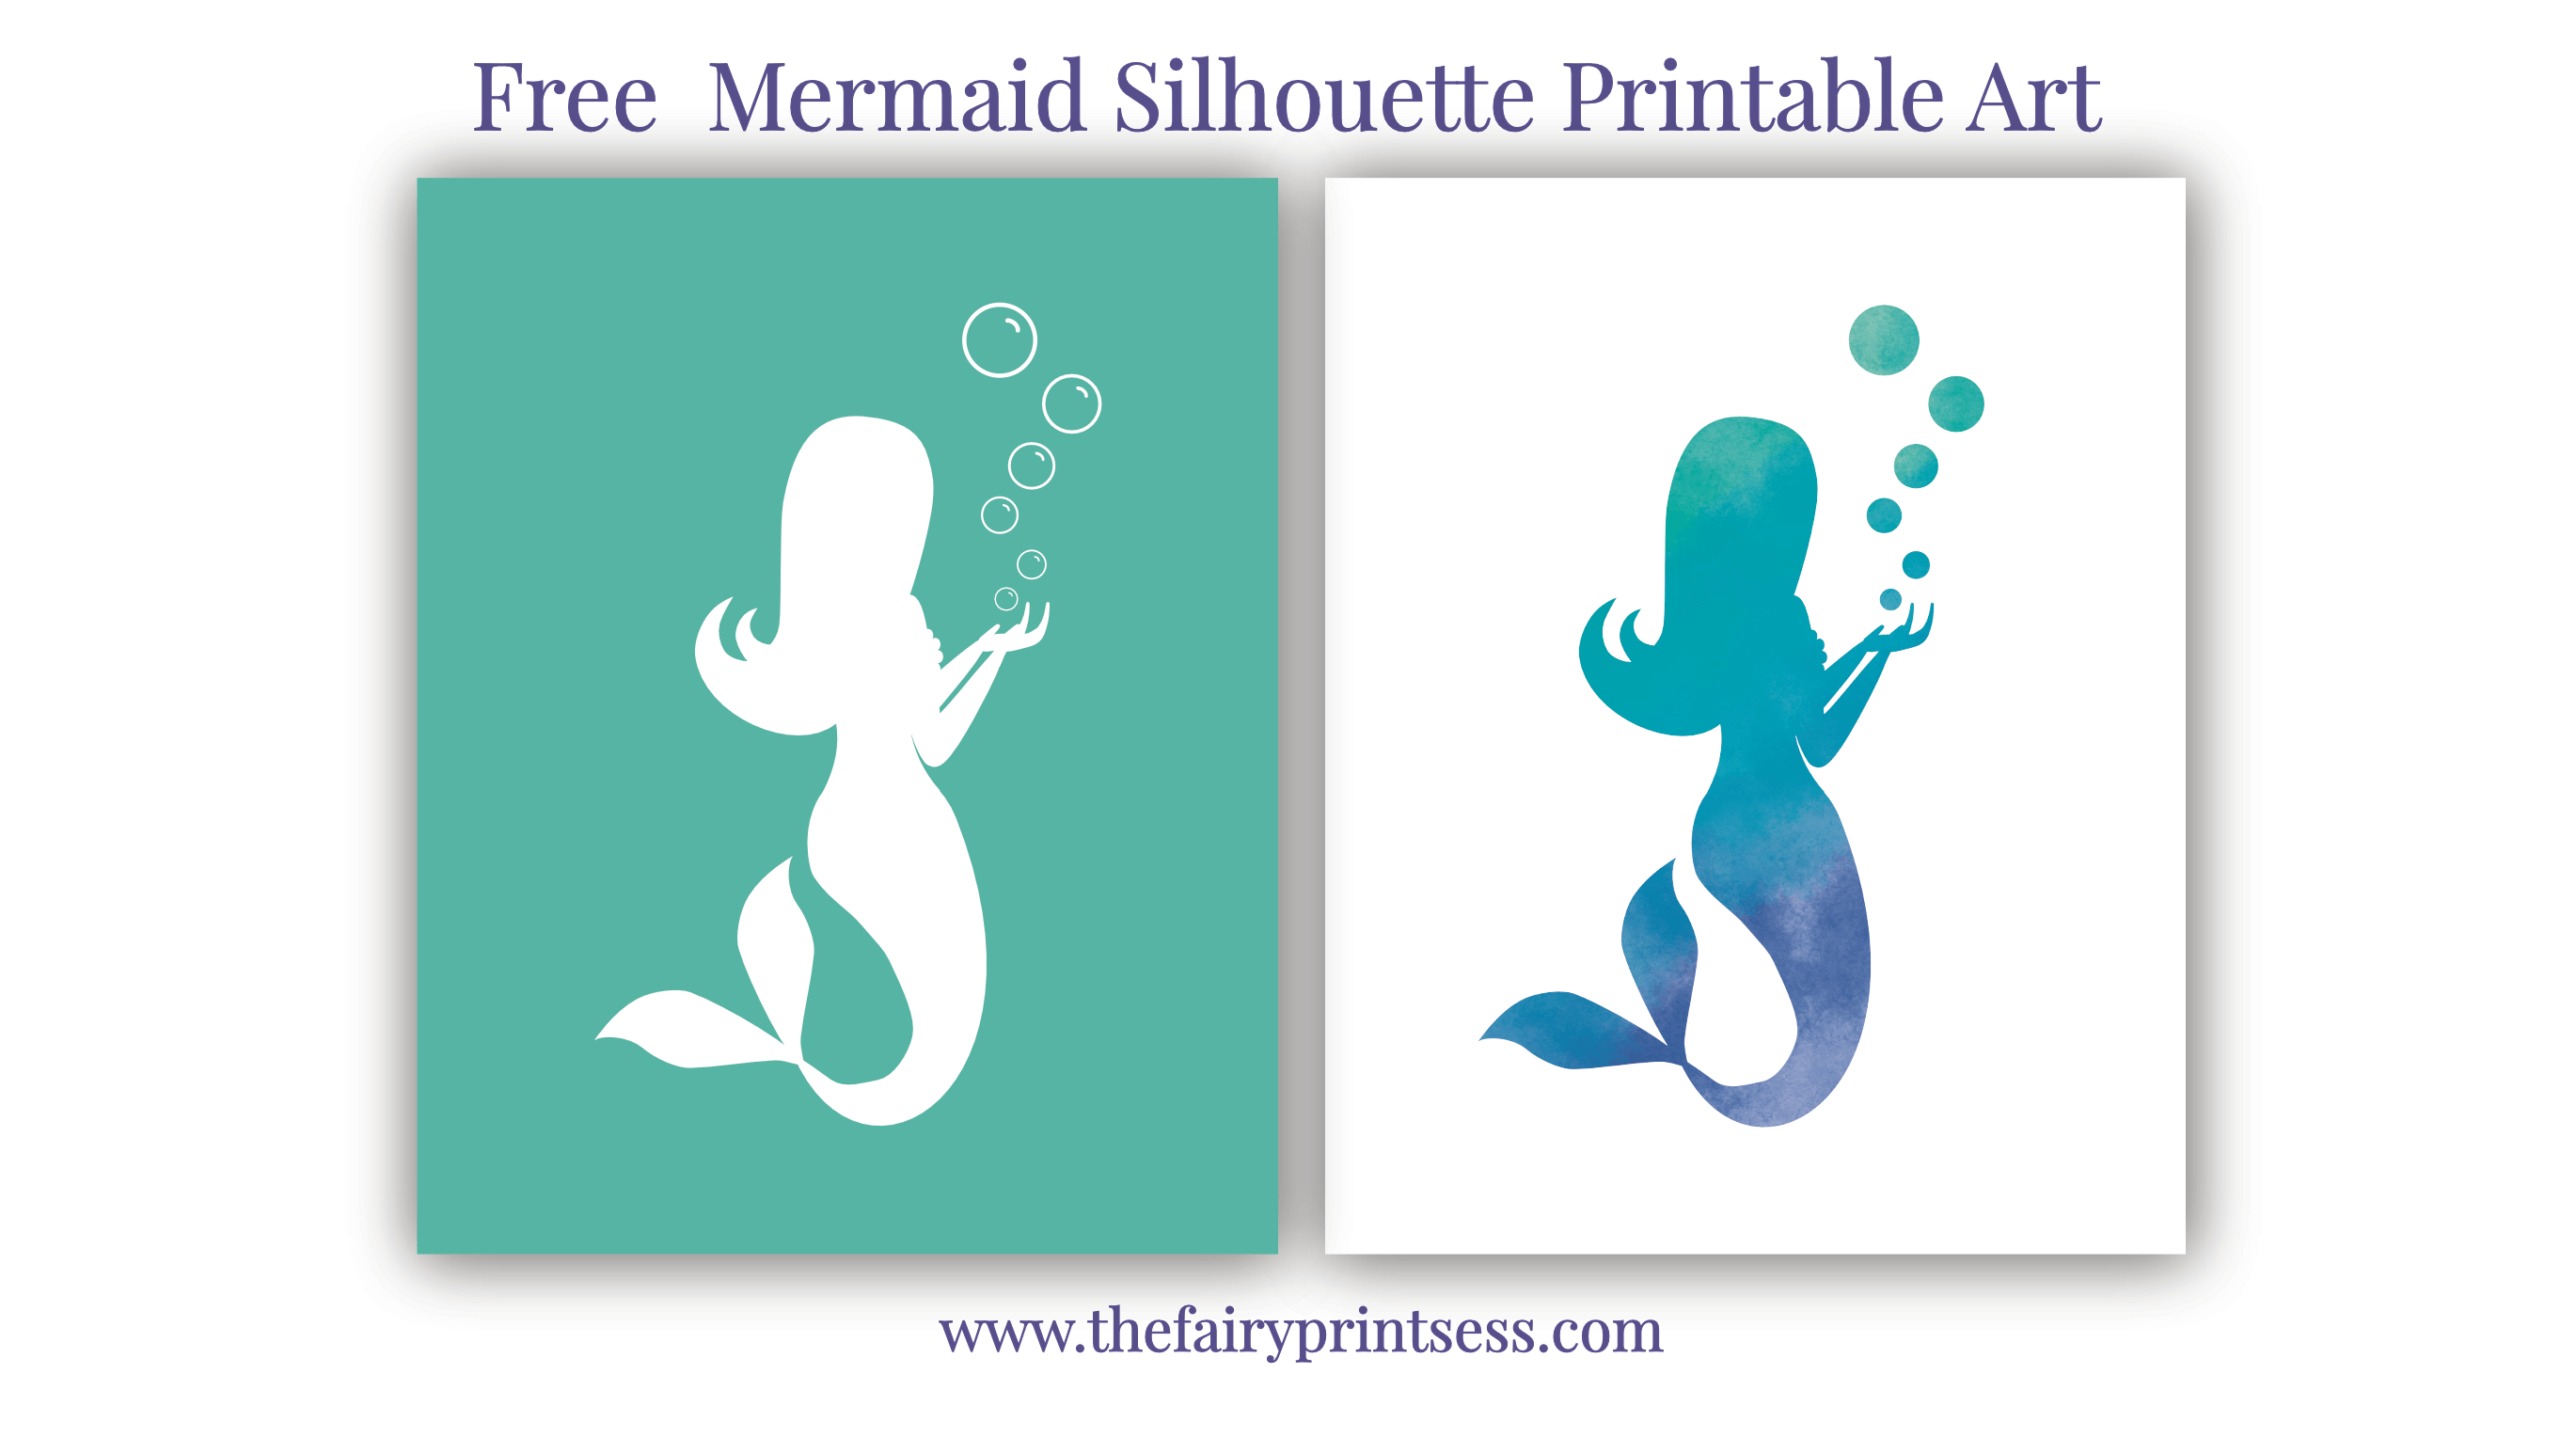 photograph regarding Free Printable Silhouettes identified as Mermaid Silhouette Totally free Printable Artwork